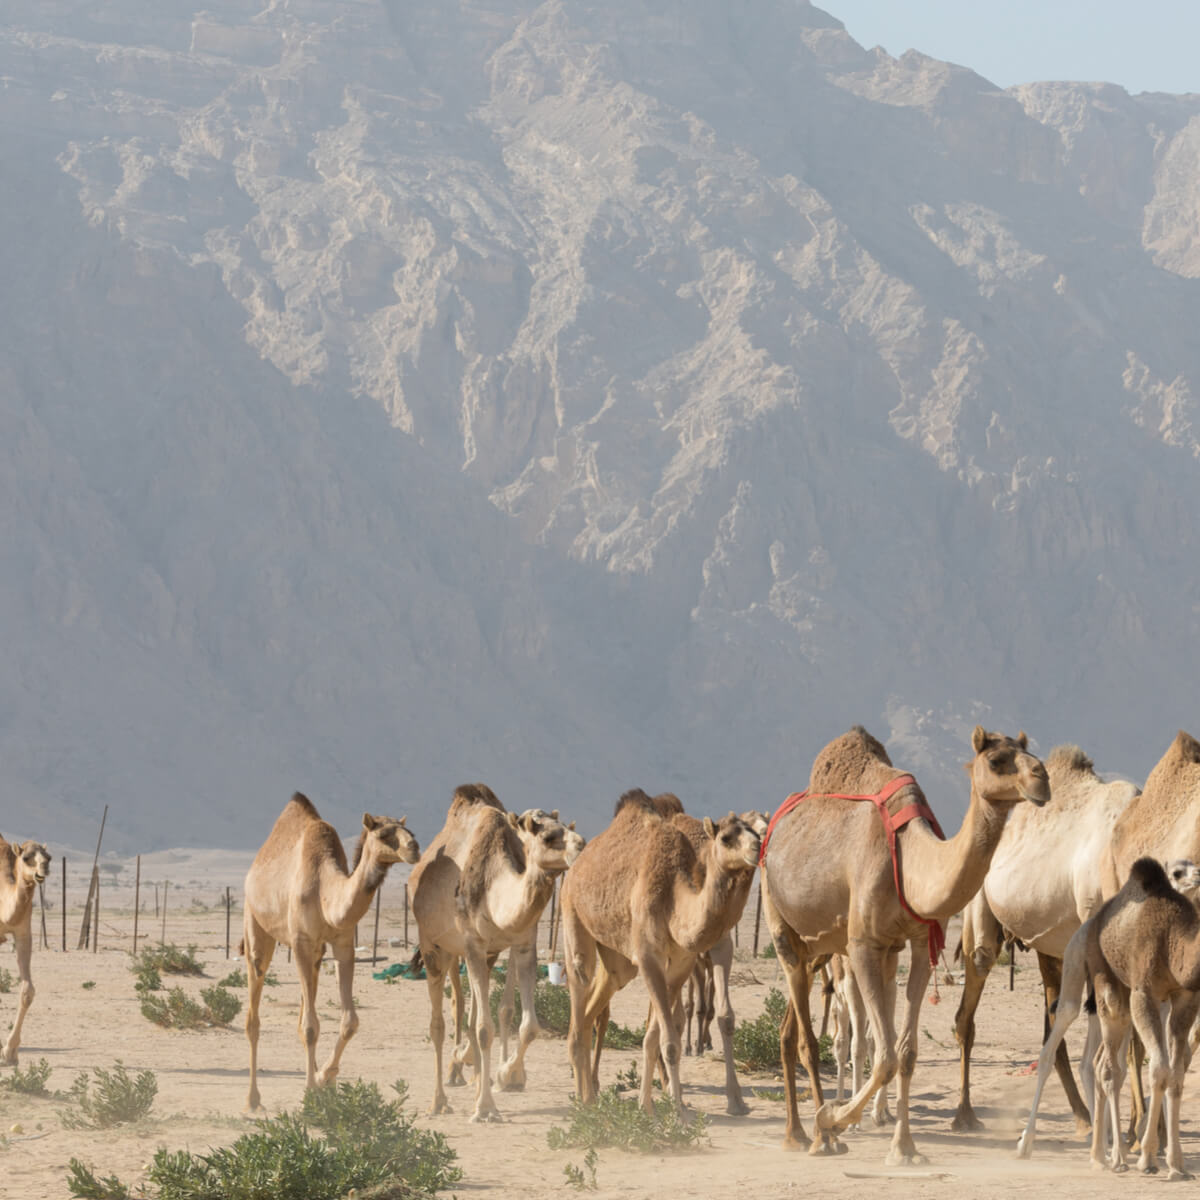 Camels in Jebel Hafeet Mountain